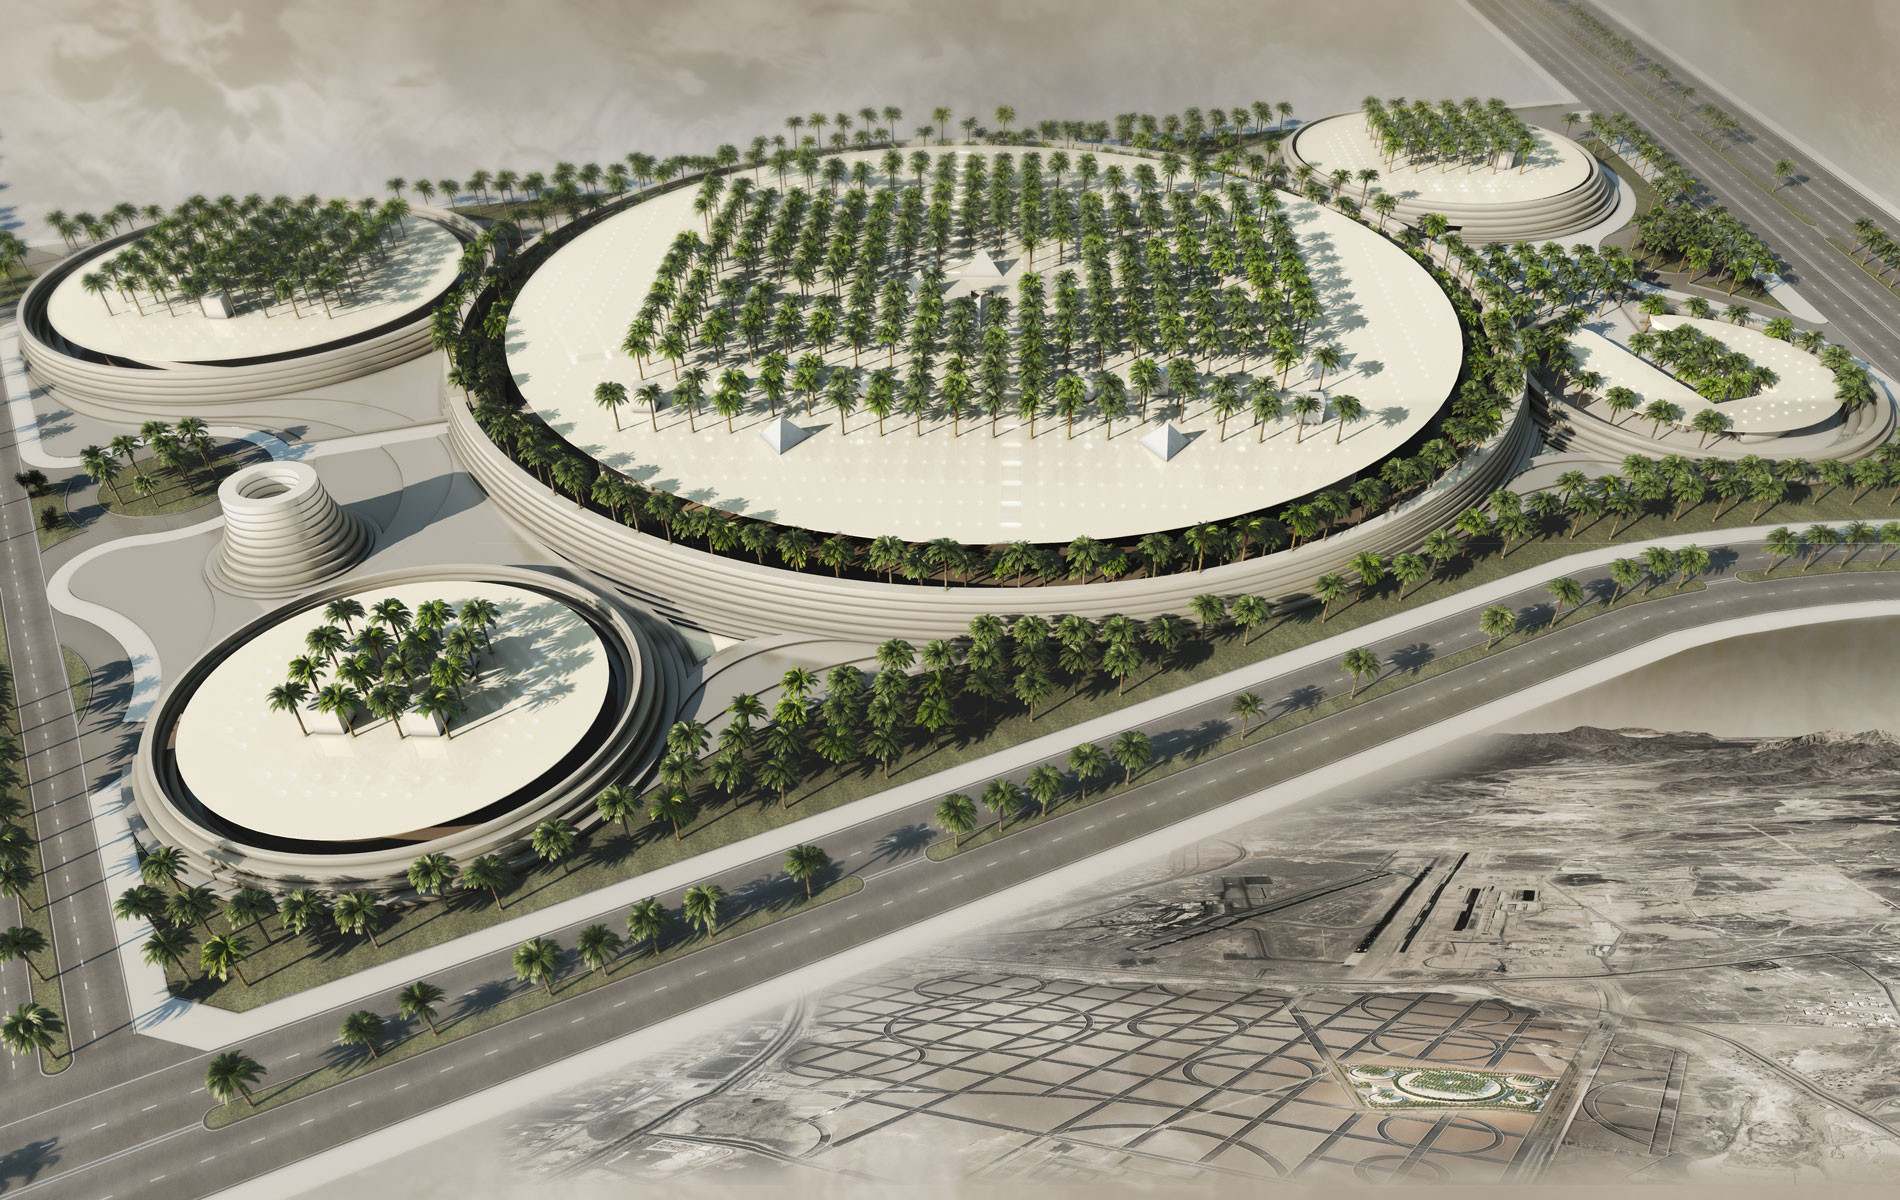 Ricardo Bofill's Winning Proposal for the The Noble Qur'an Oasis Competition, Noble Qur'an Oasis in Medina, Saudi Arabia. Image Courtesy of Ricardo Bofill Taller de Arquitectura